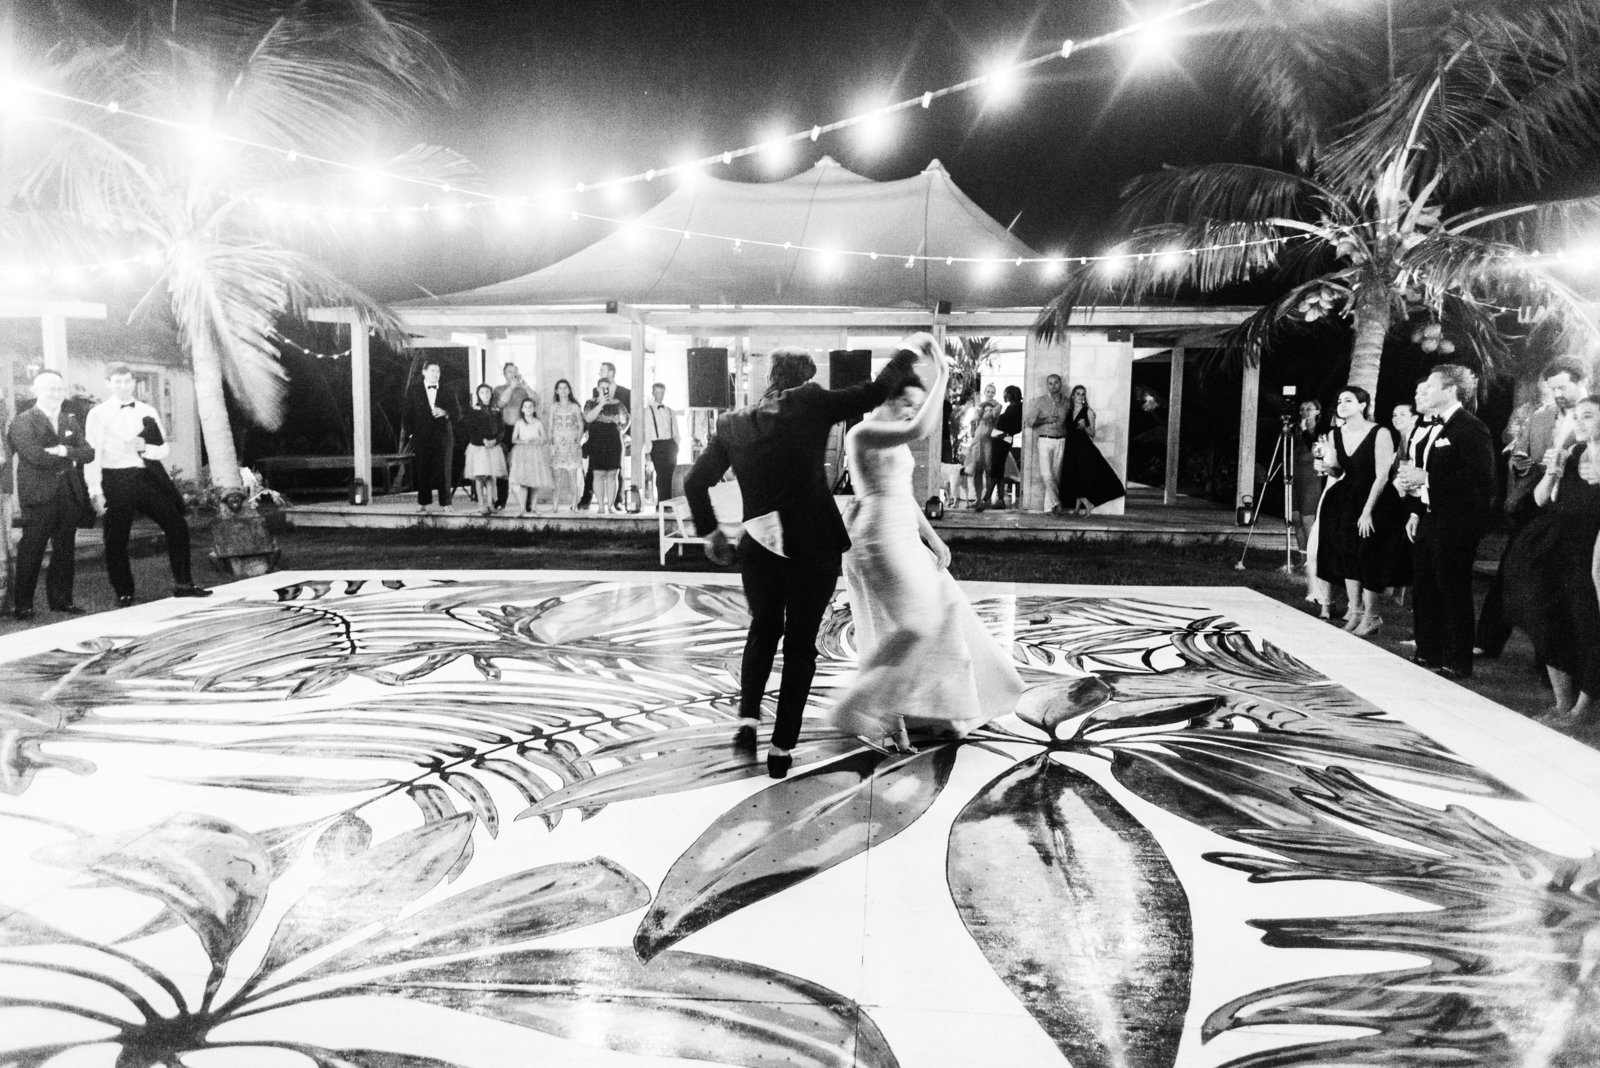 20171111-Pura-Soul-Photoharbour-island-bahamas-willis-wedding-686